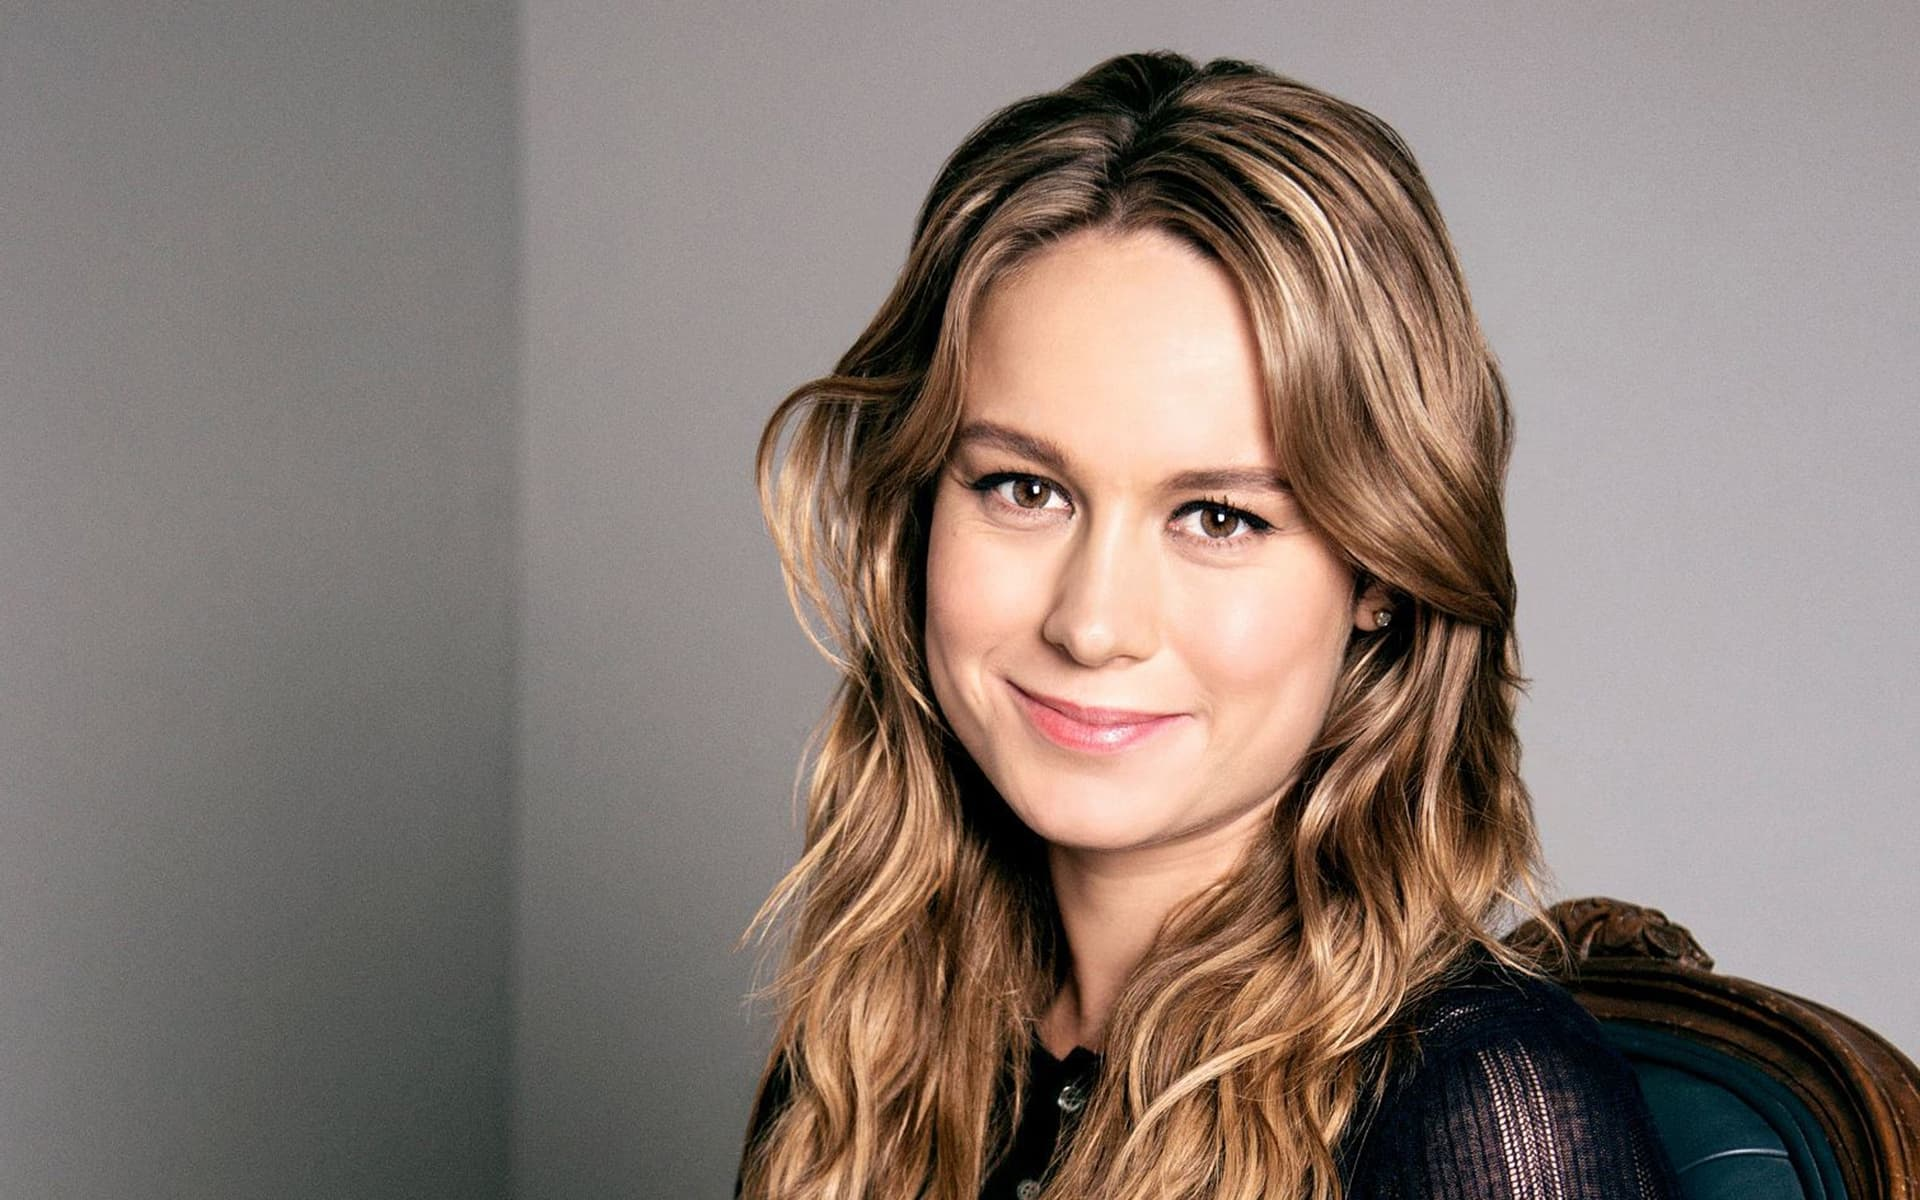 1920x1200 - Brie Larson Wallpapers 2